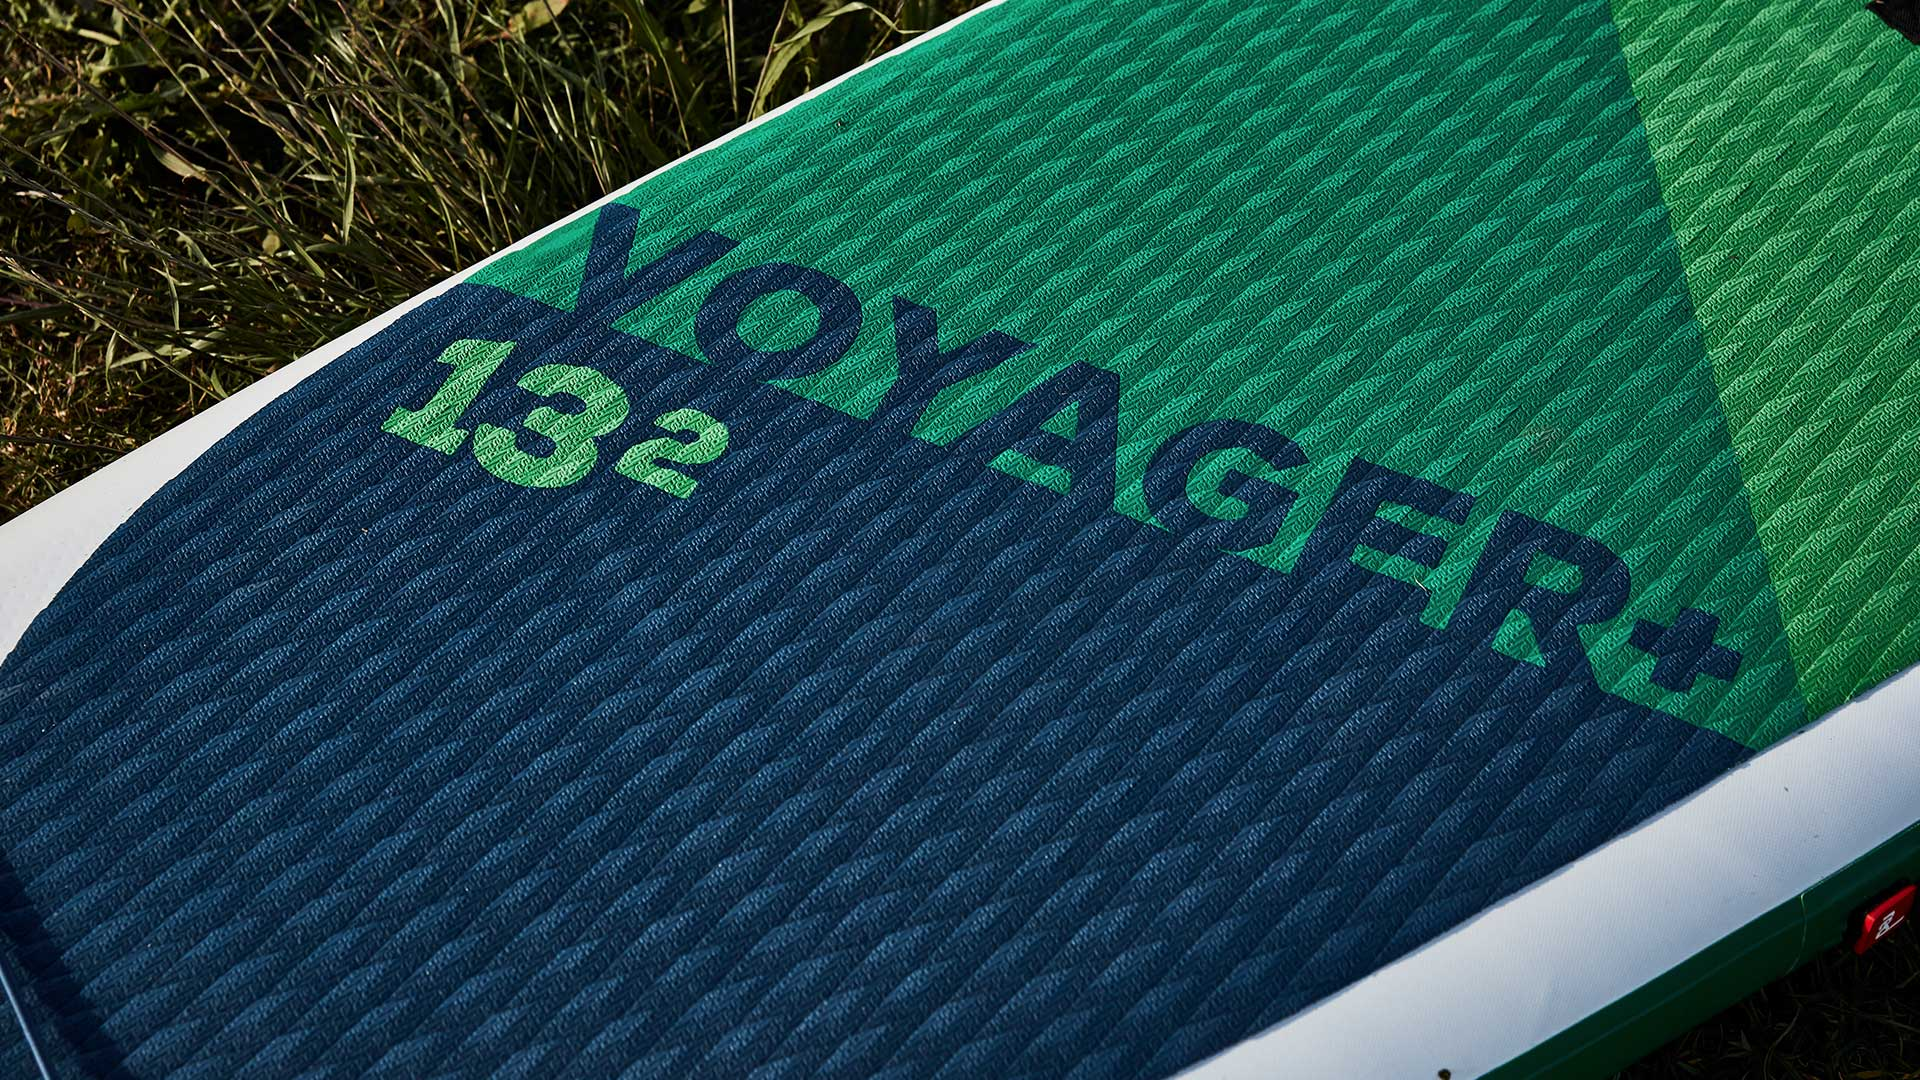 redpaddleco-132-voyager-inflatable-paddle-board-desktop-gallery-deckpad